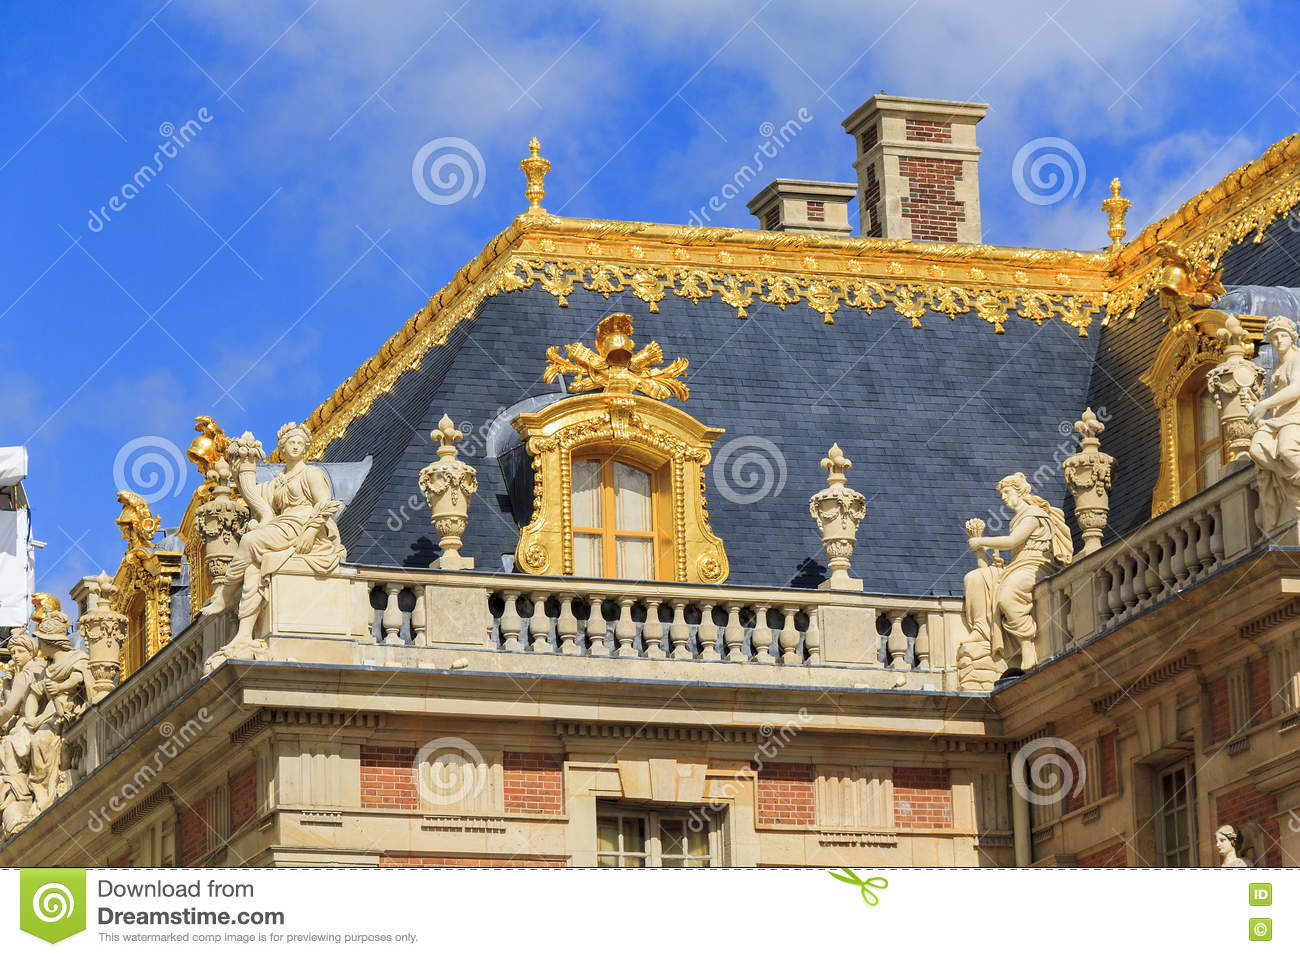 fragment of the roof of palace of versailles editorial stock photo image 72136473. Black Bedroom Furniture Sets. Home Design Ideas